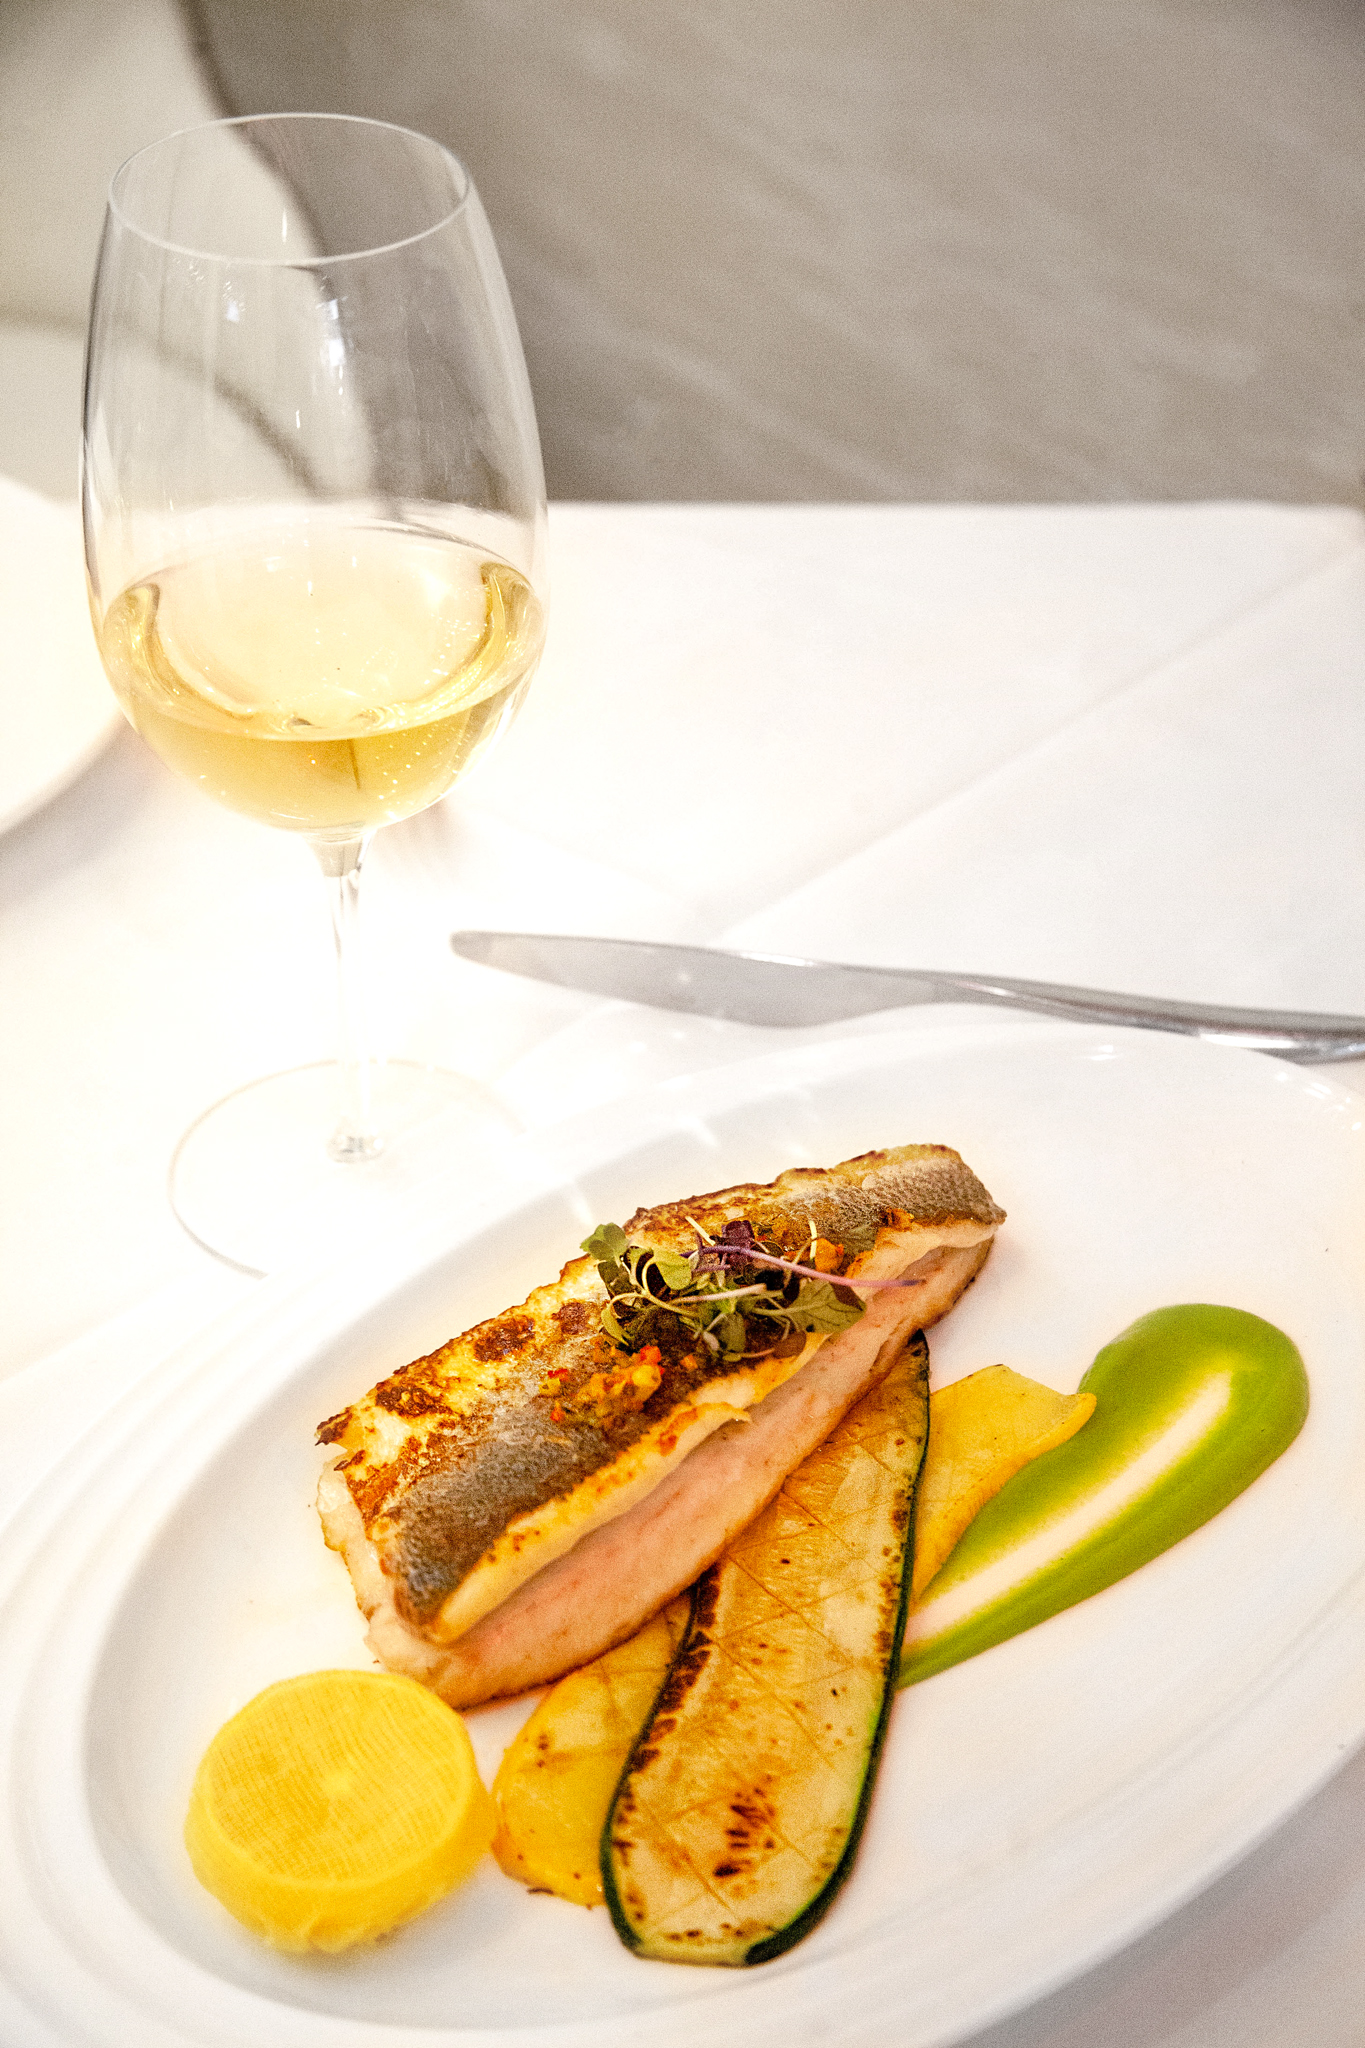 Branzino with vegetables